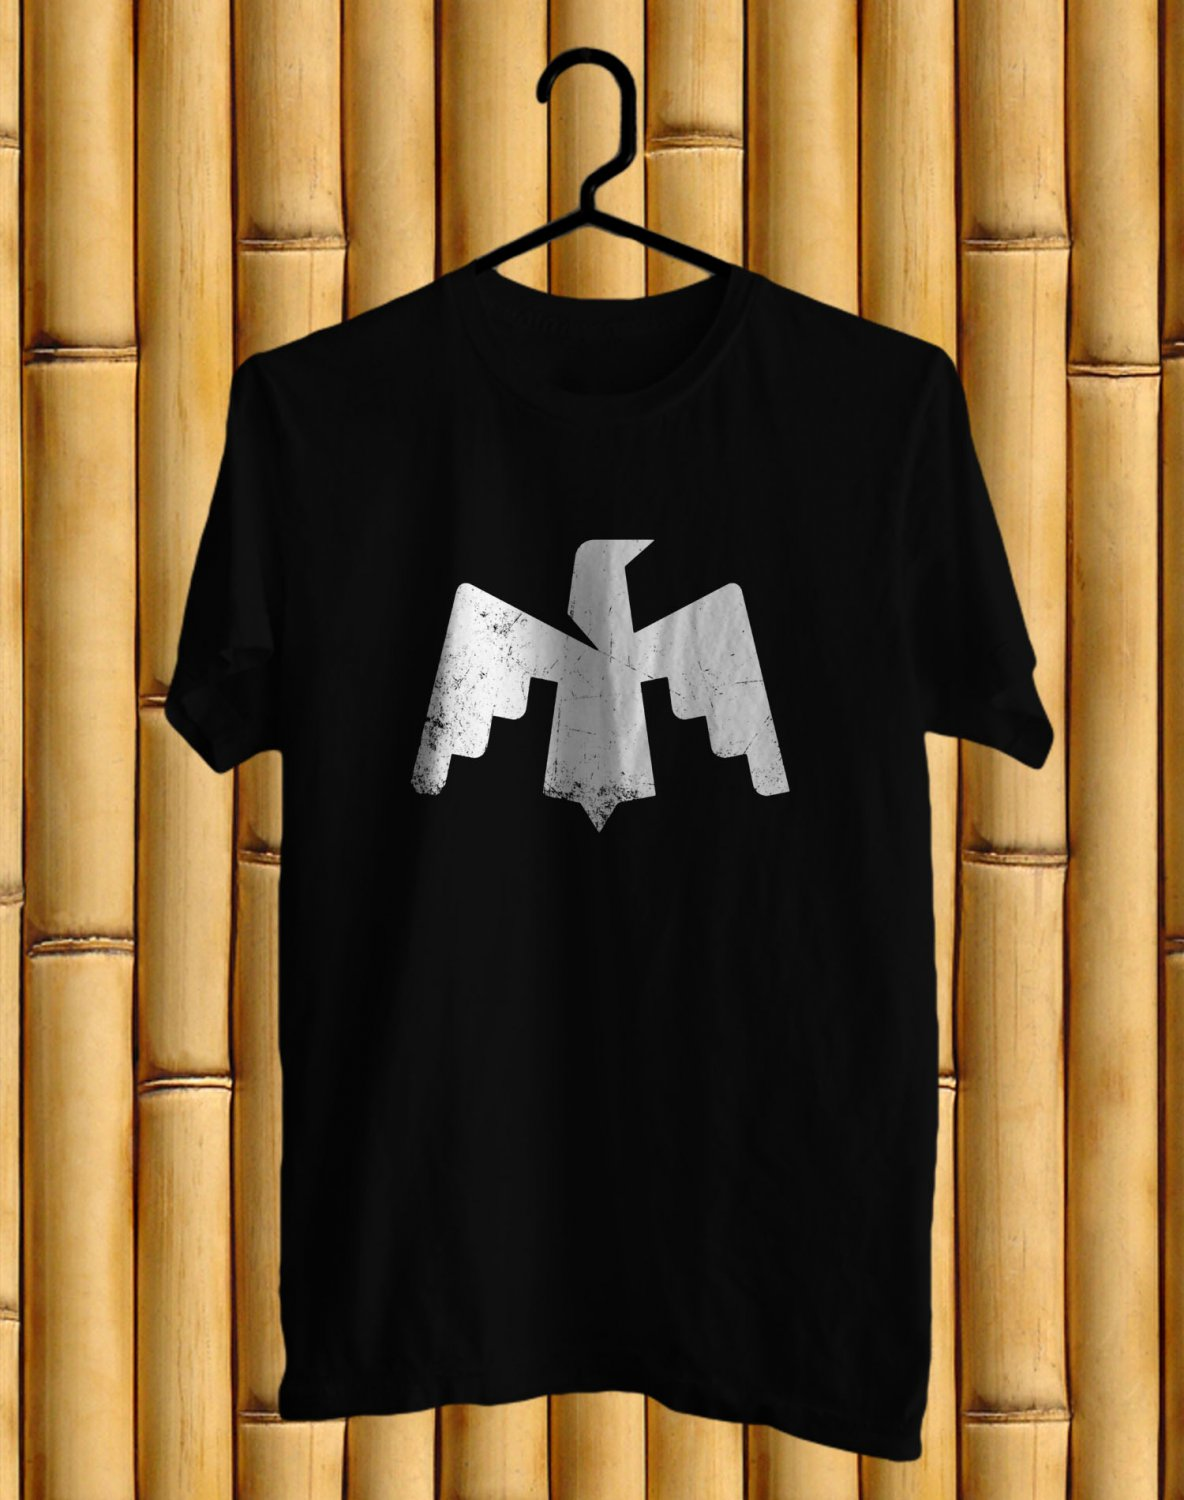 Maha Music festival Logo 2017 Black Tee's Front Side by Complexart